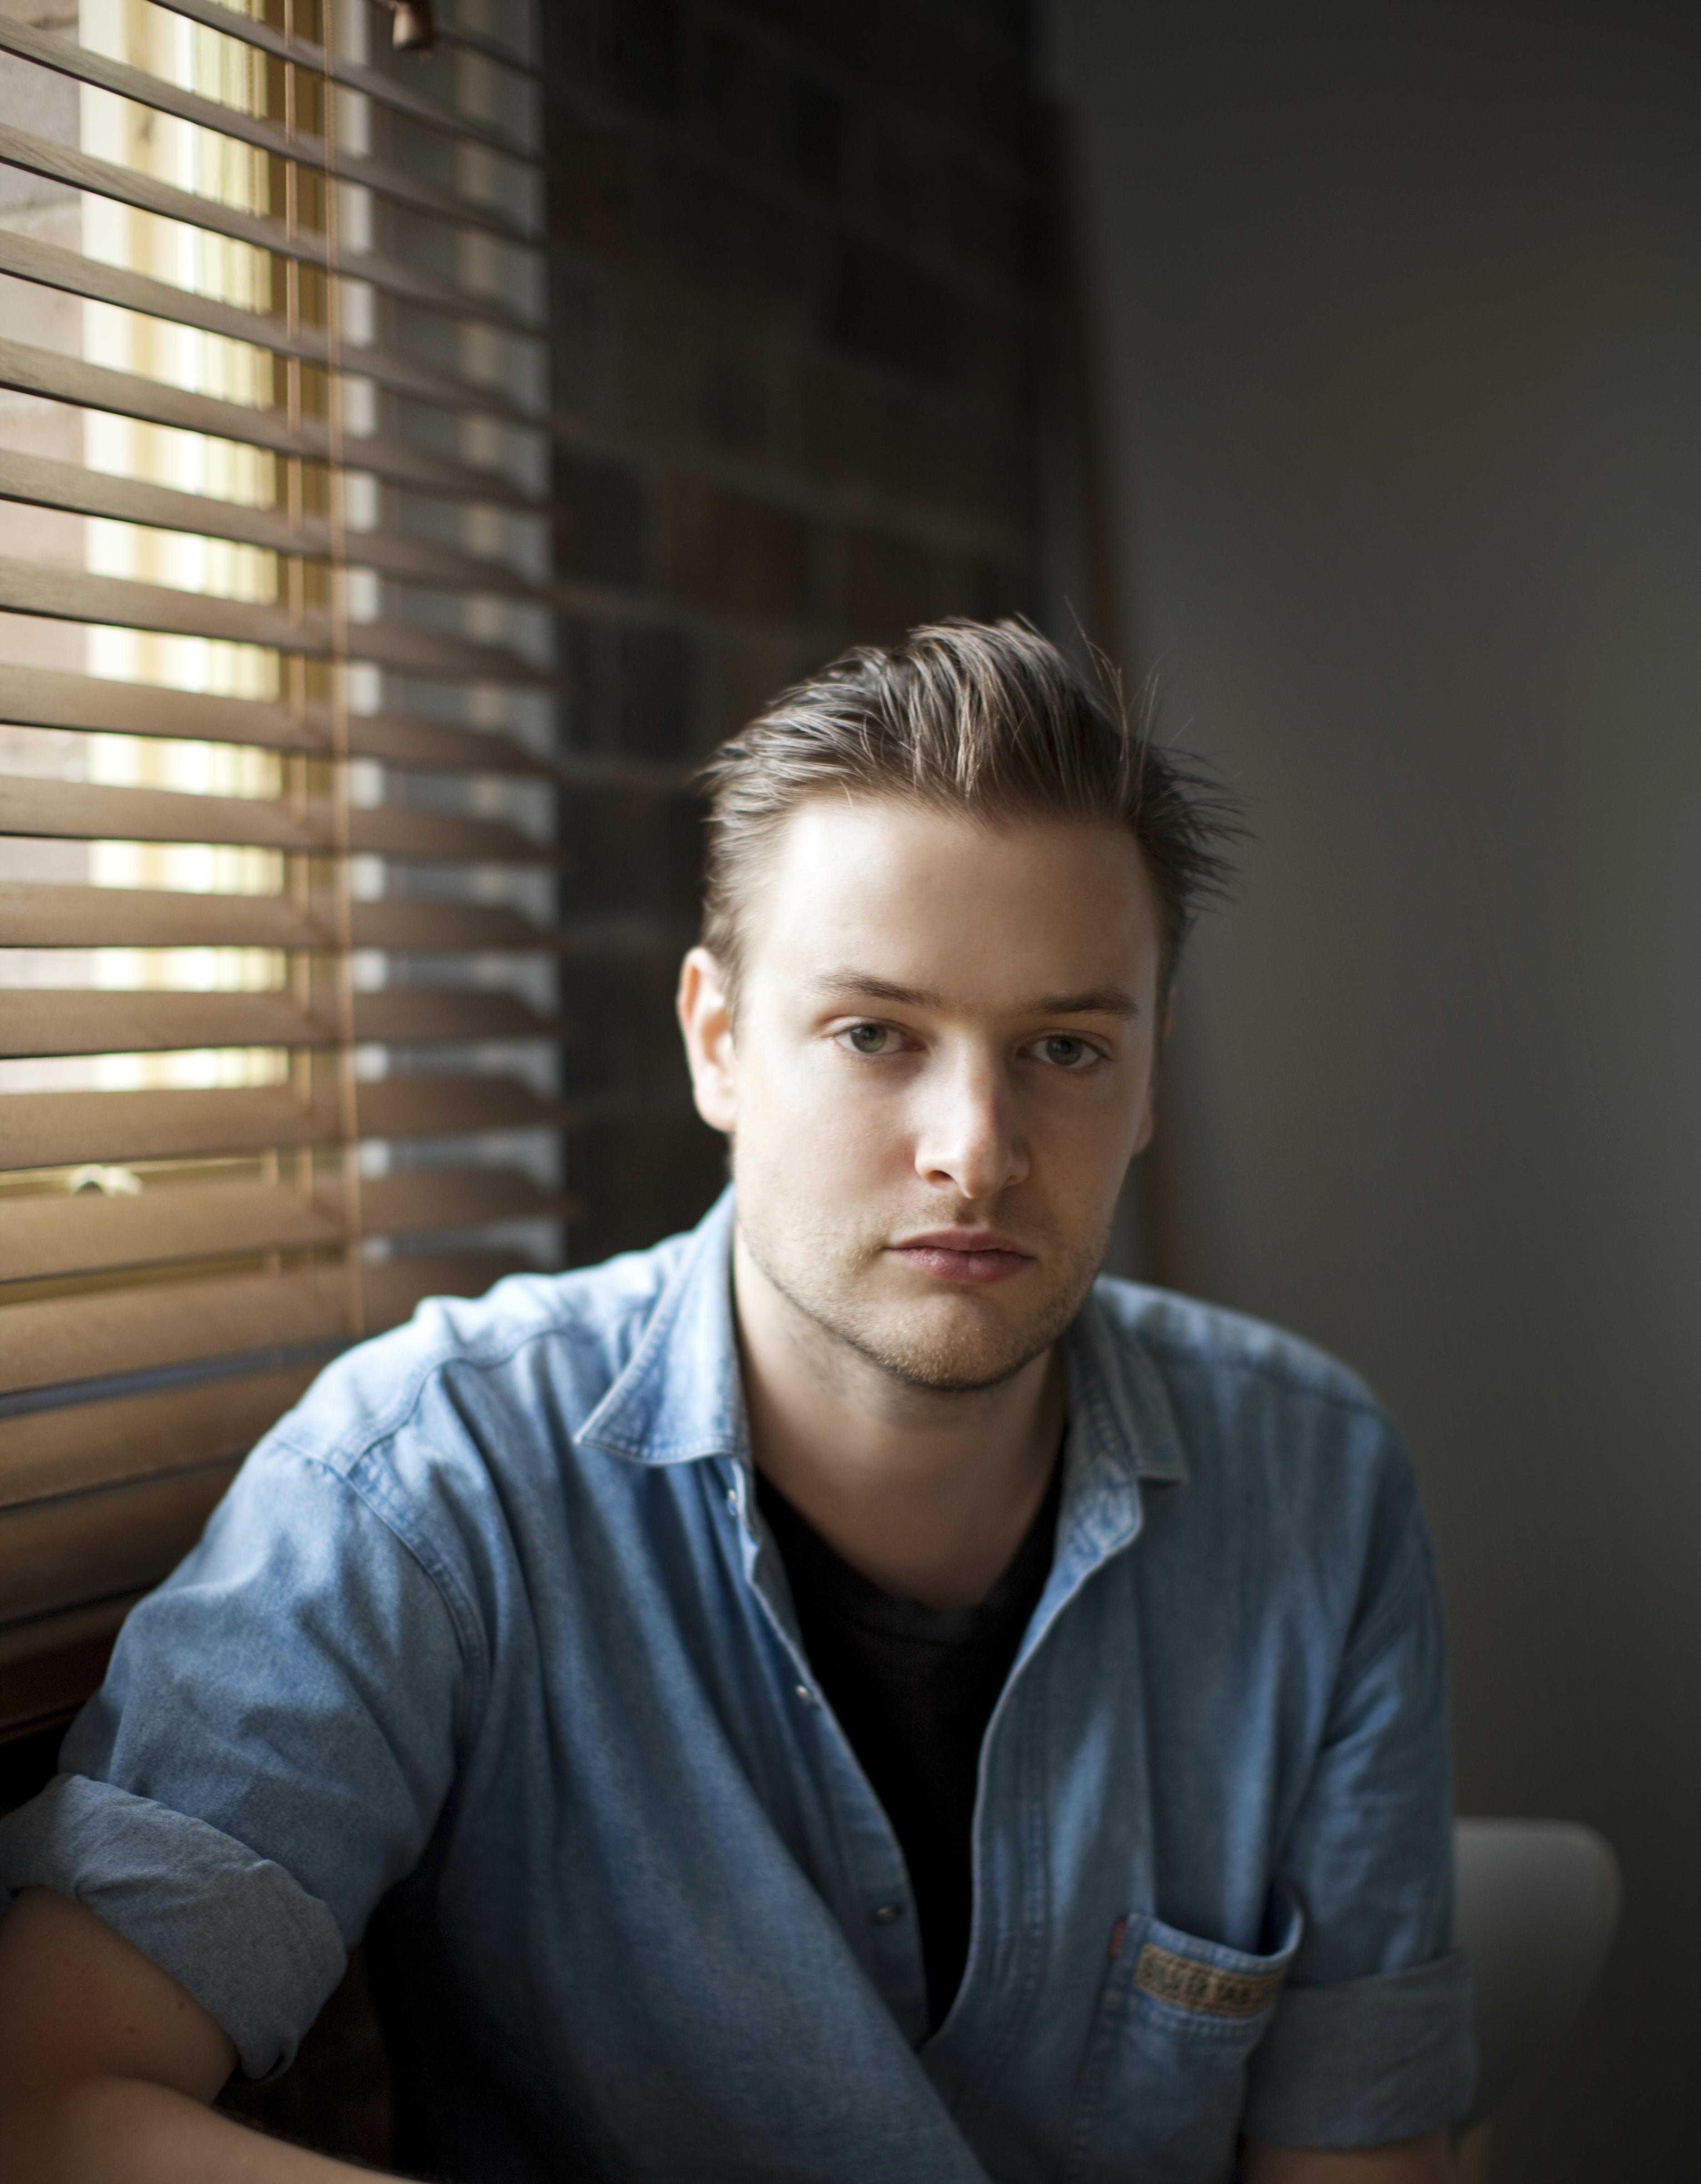 A light-skinned young man with slicked-back hair and faint stubble, wears a denim shirt.